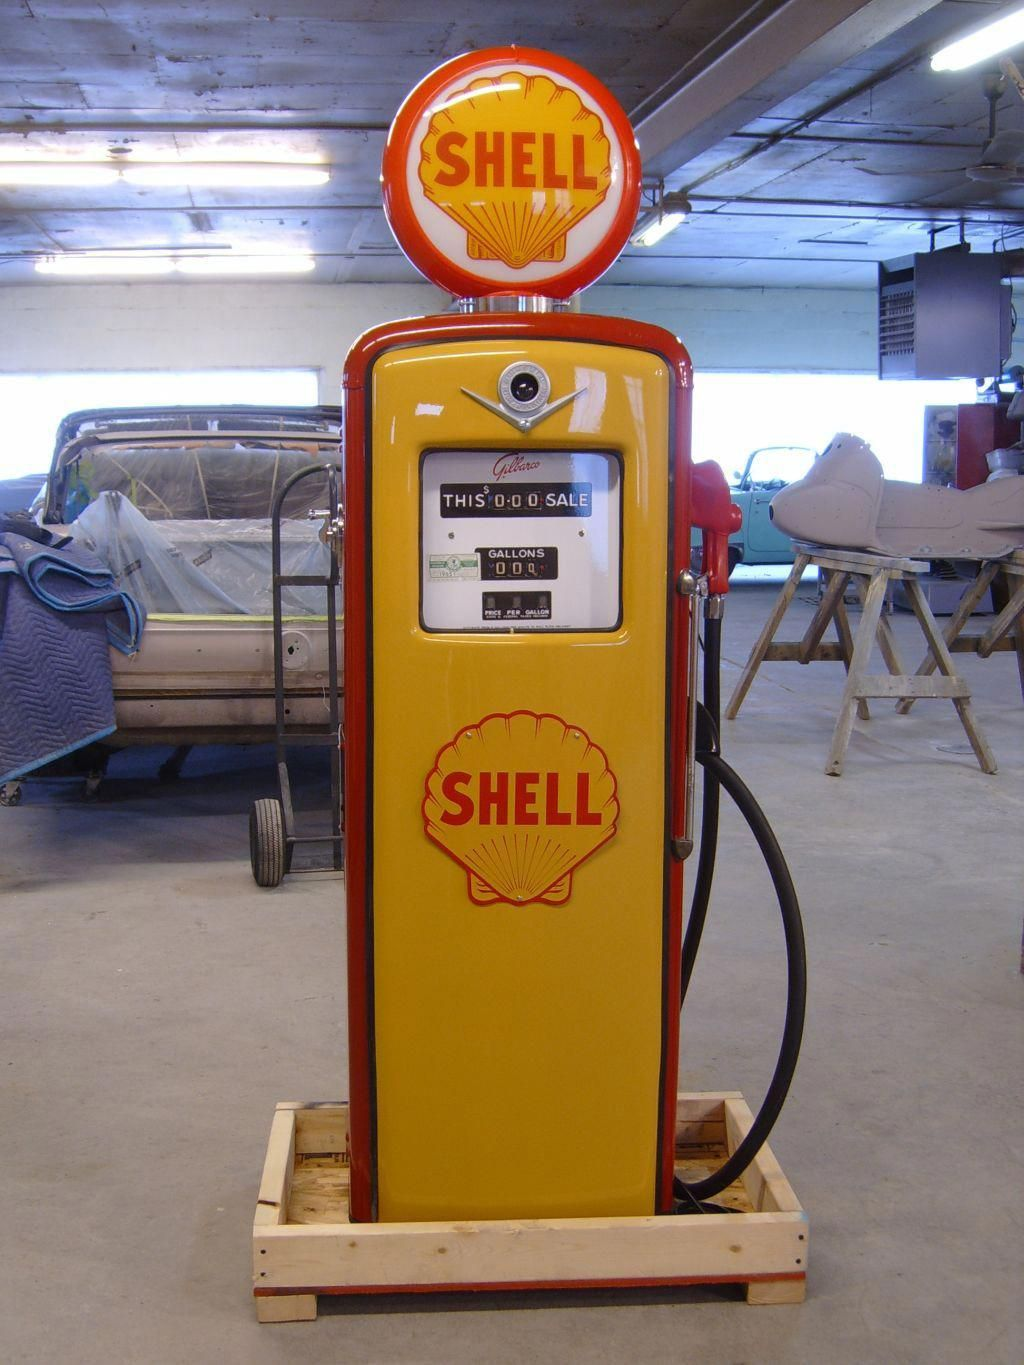 Pin by Oilfield Jobs on Oilfield Jobs Gas pumps, Vintage